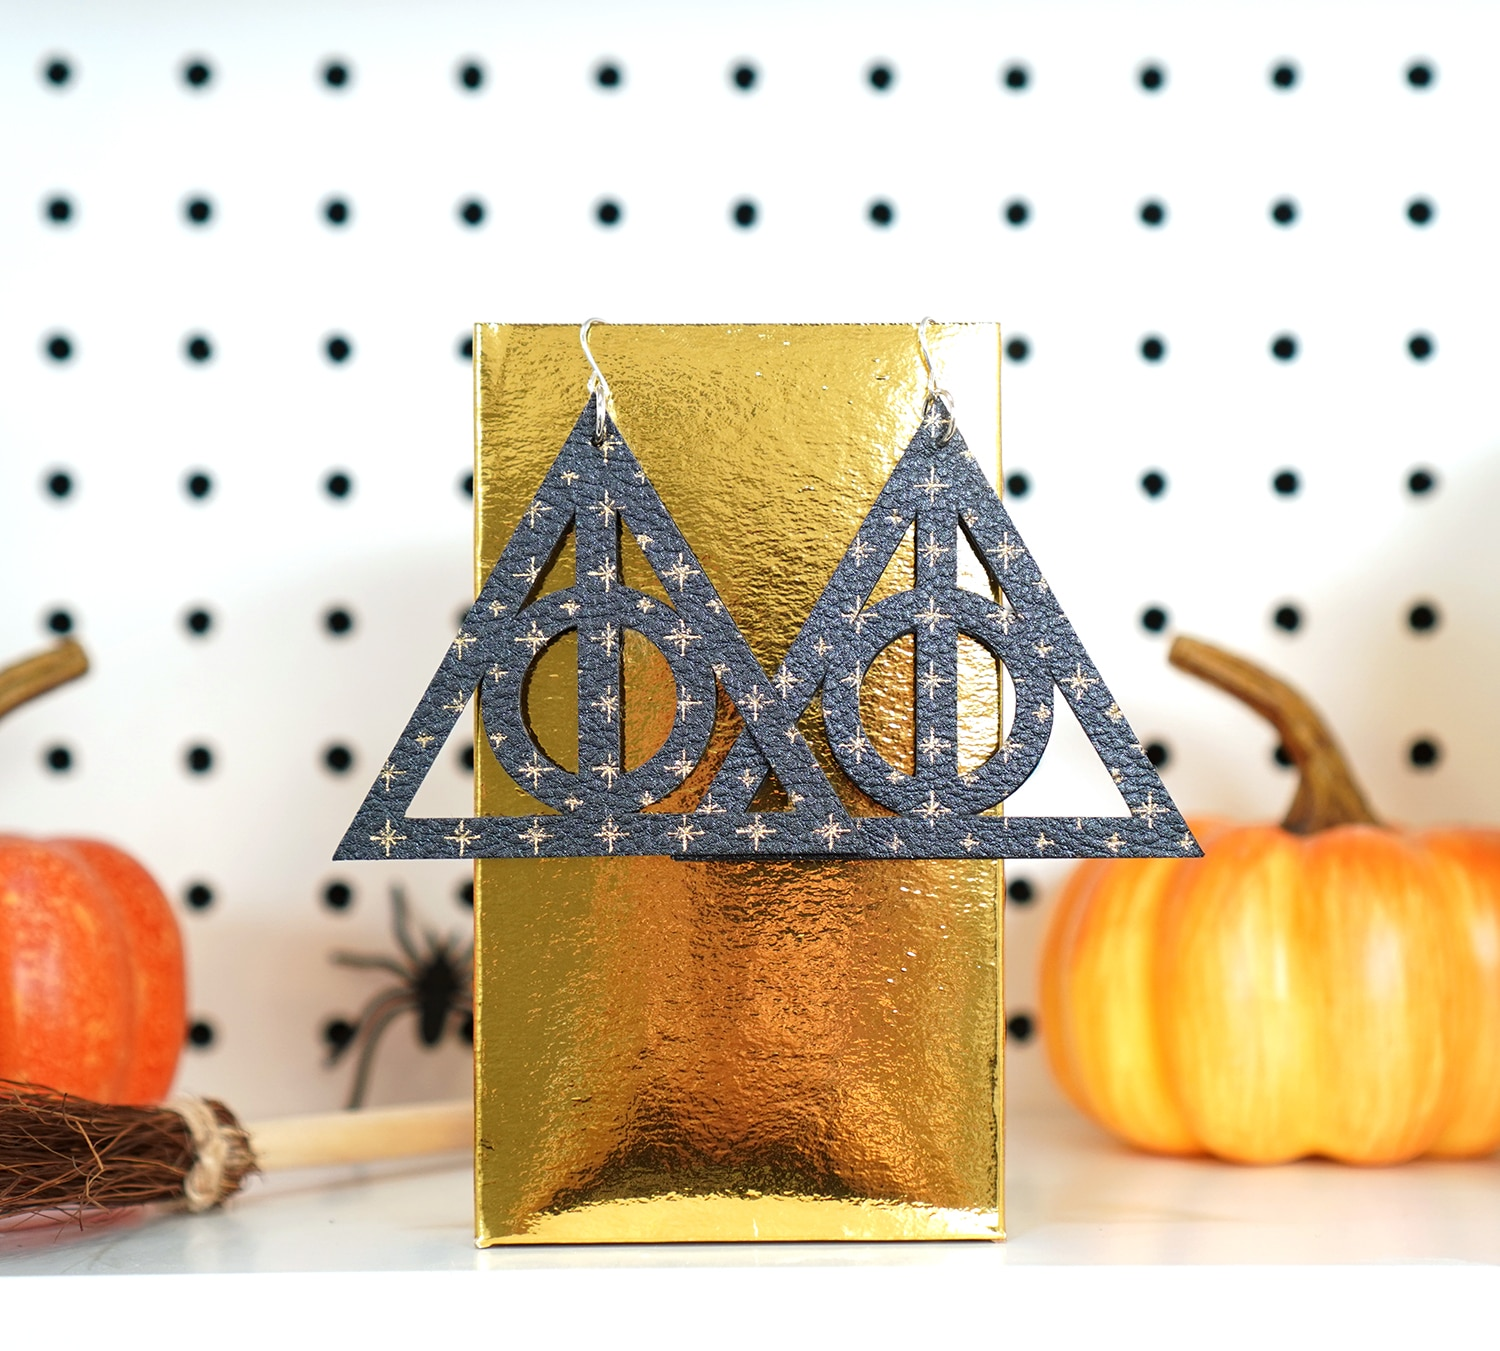 Deathly Hallows leather earrings with gold star pattern hanging on gold box with pumpkin in background